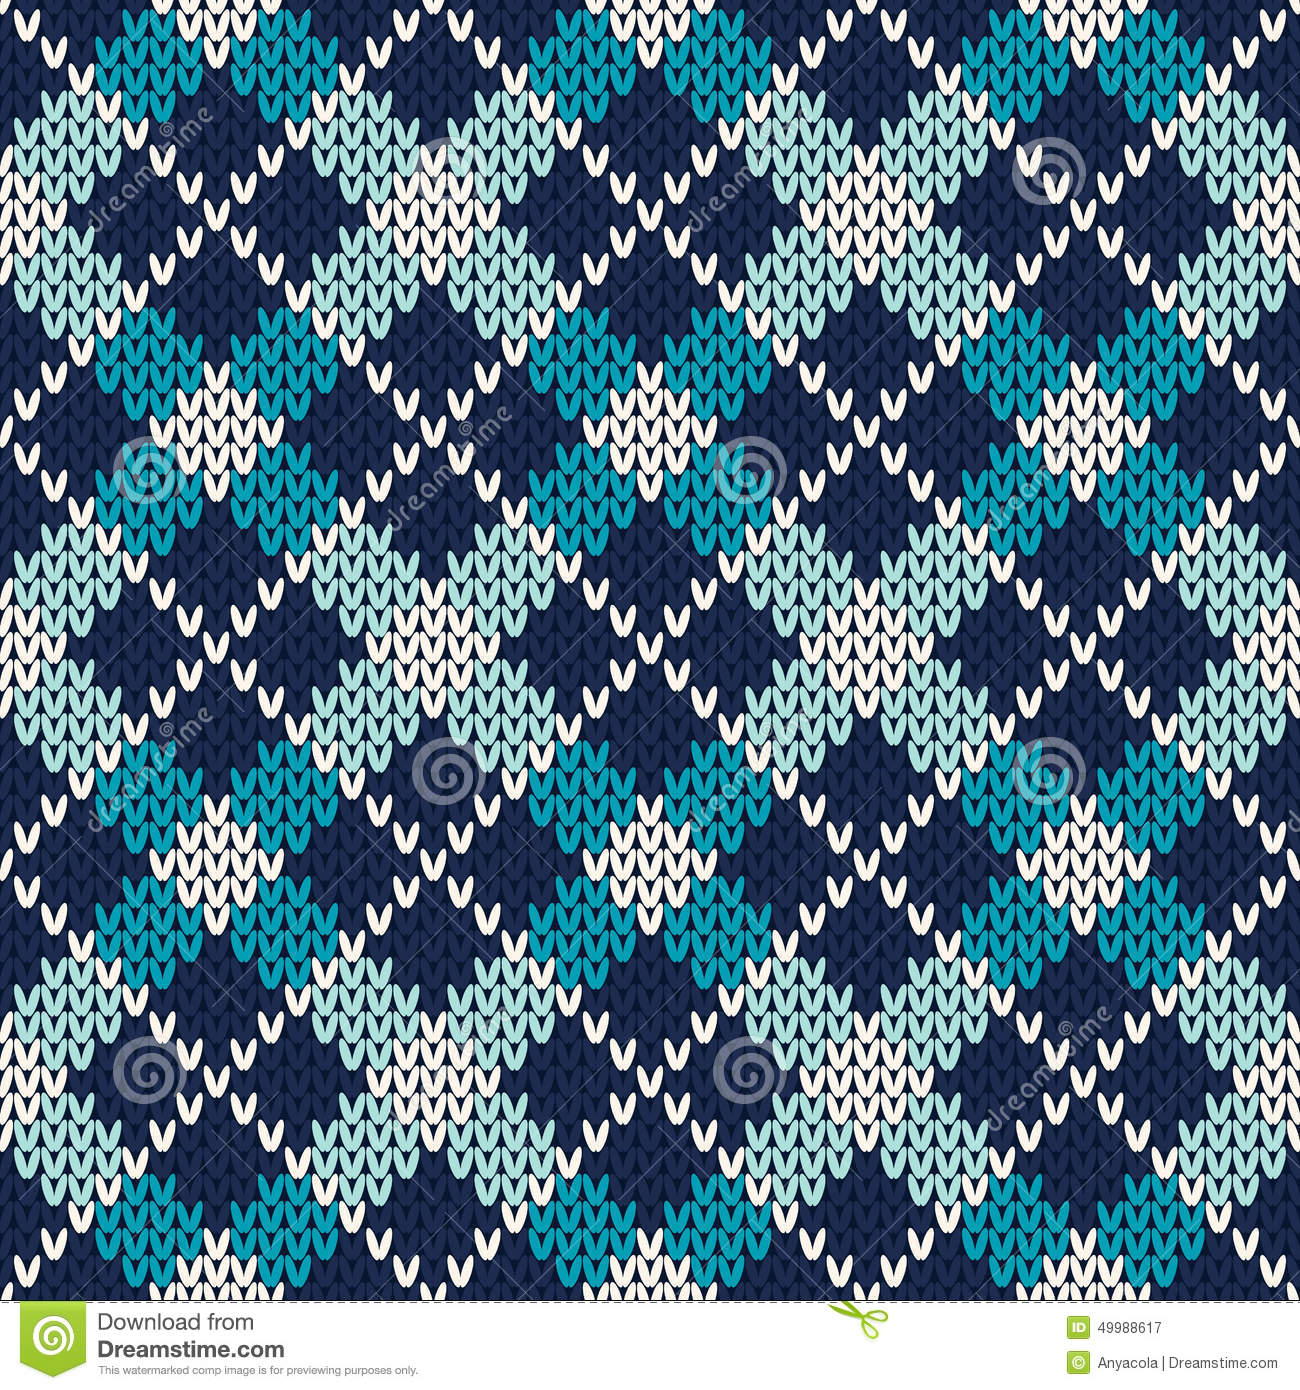 Knit Argyle Pattern : Argyle Knitted Pattern. Seamless Vector Background Stock Vector - Image: 4998...